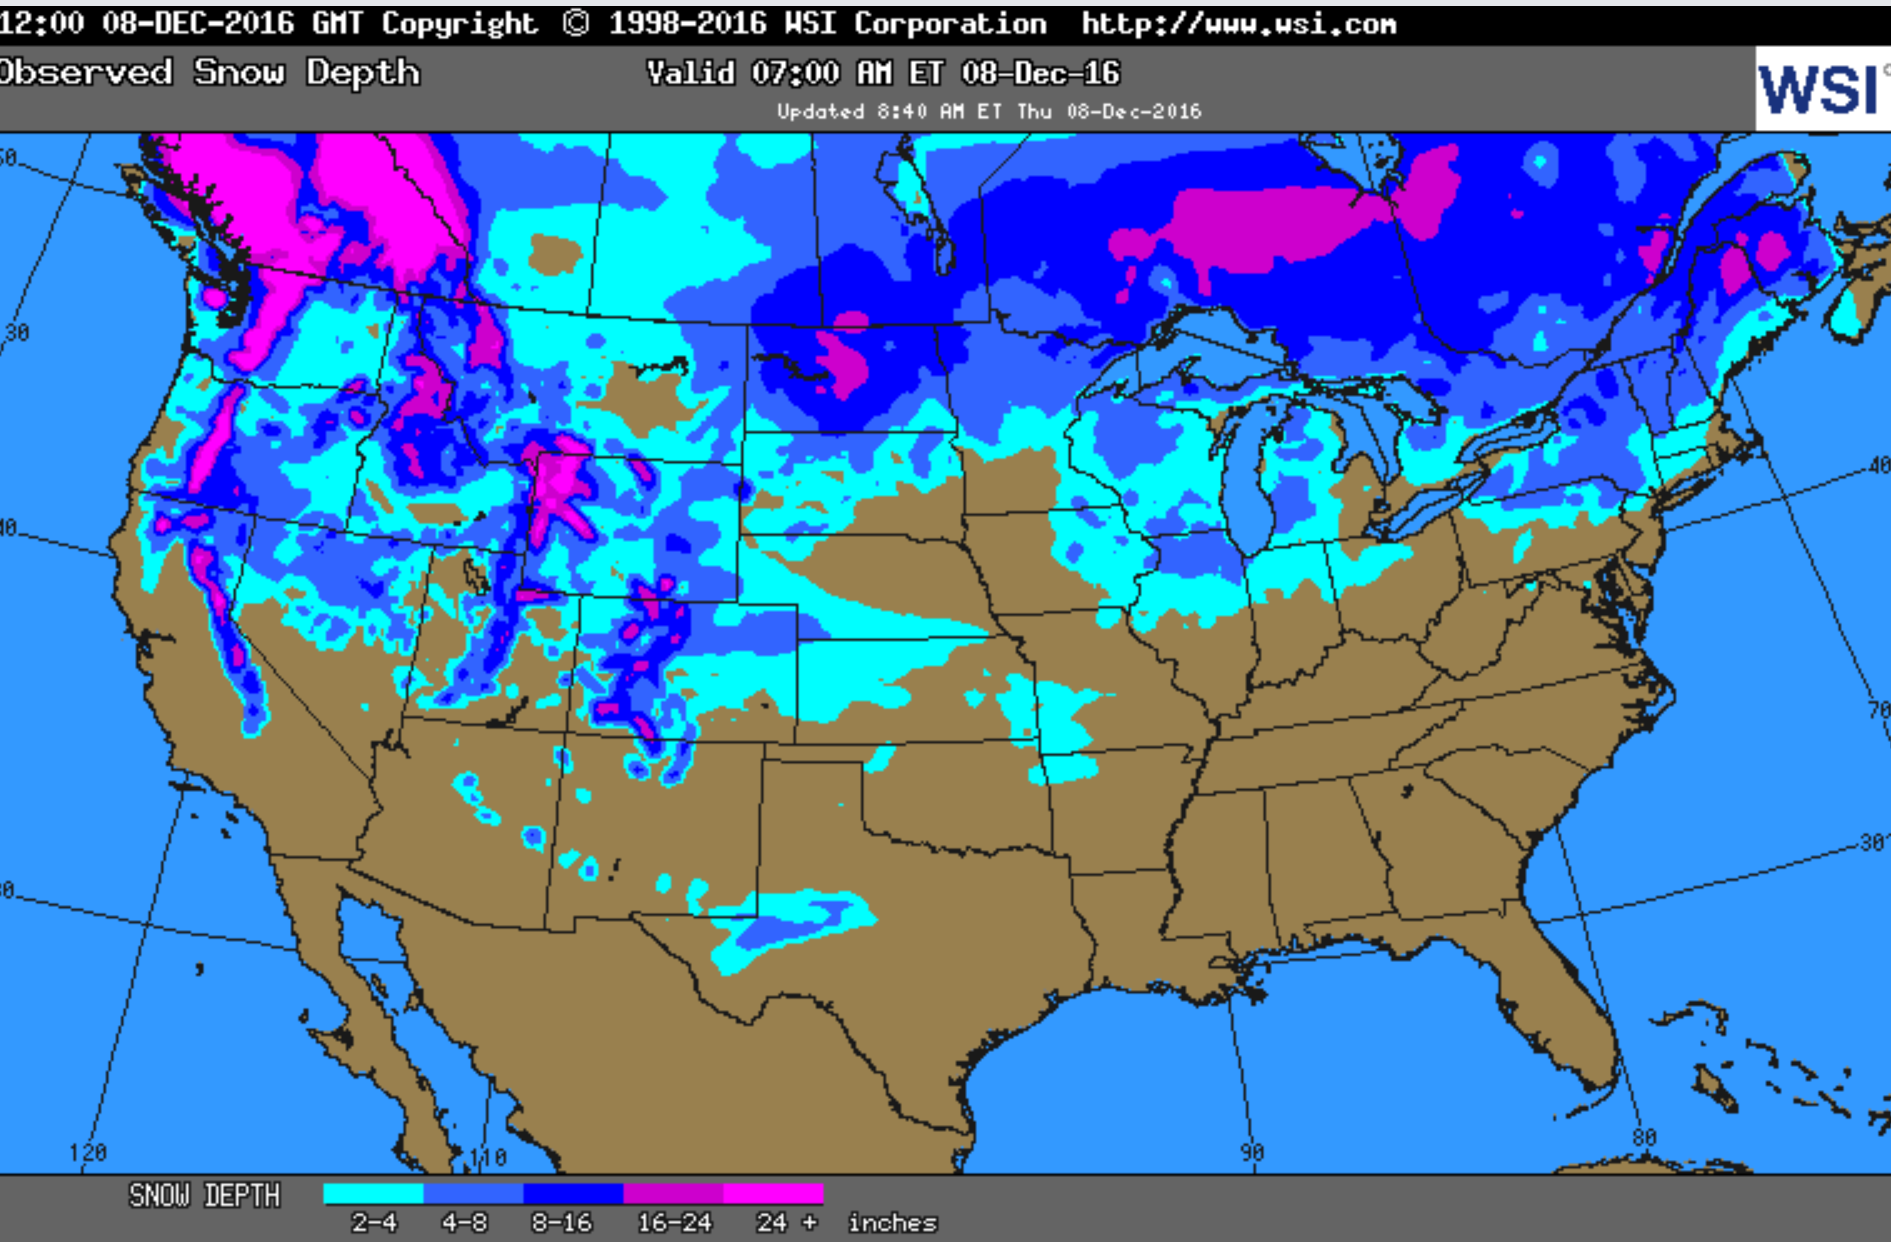 Michigan Is In The Bullseye For Snow Cover In The United States